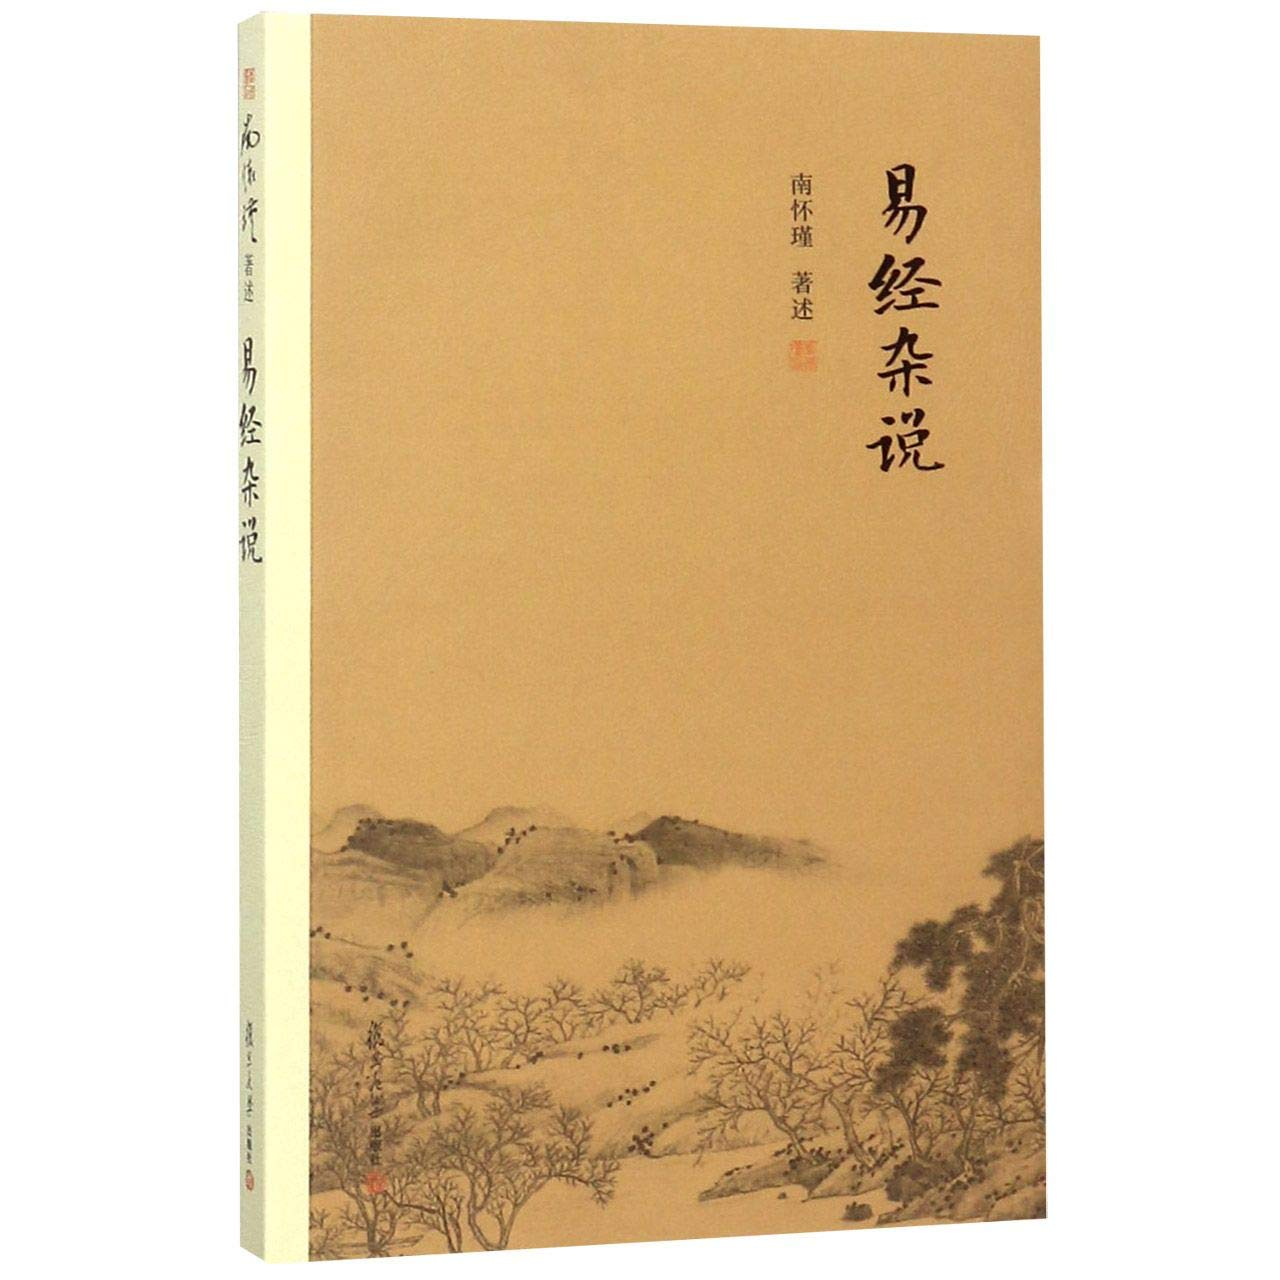 Interpretation Of The Book Of Changes By Nan Huaijin (Chinese Edition)